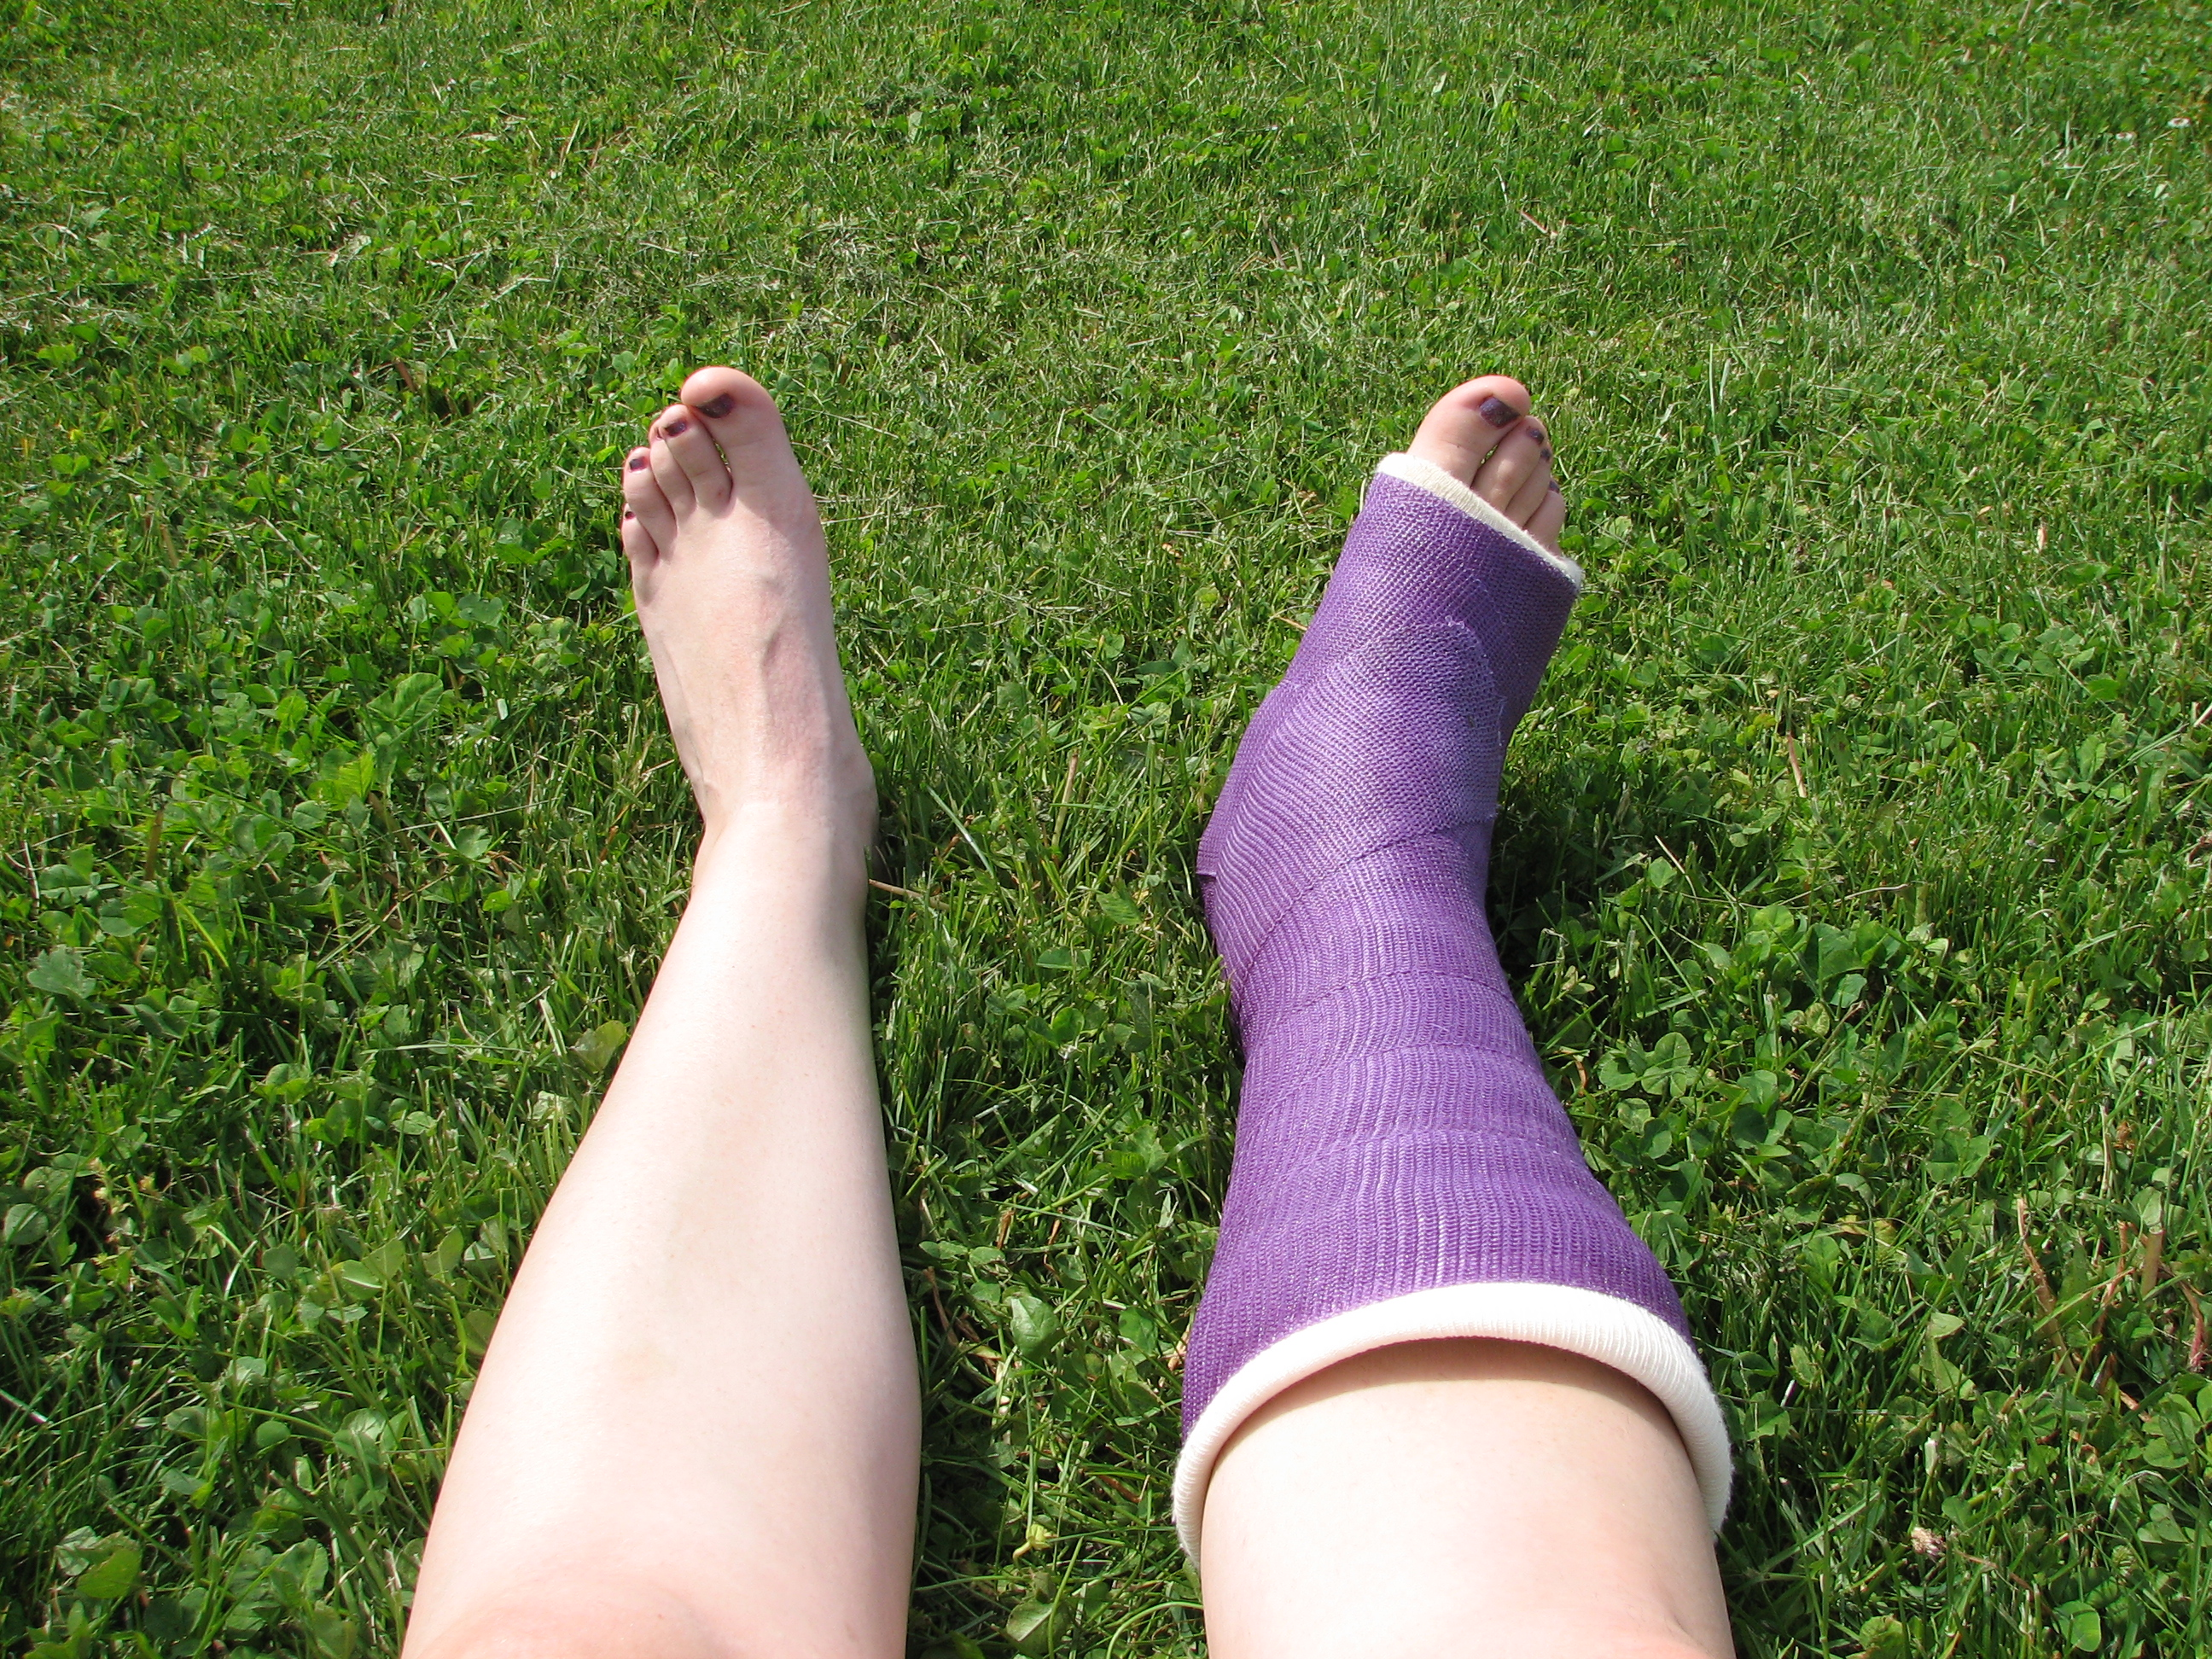 File:Orthopedic cast In color.jpg - Wikimedia Commons